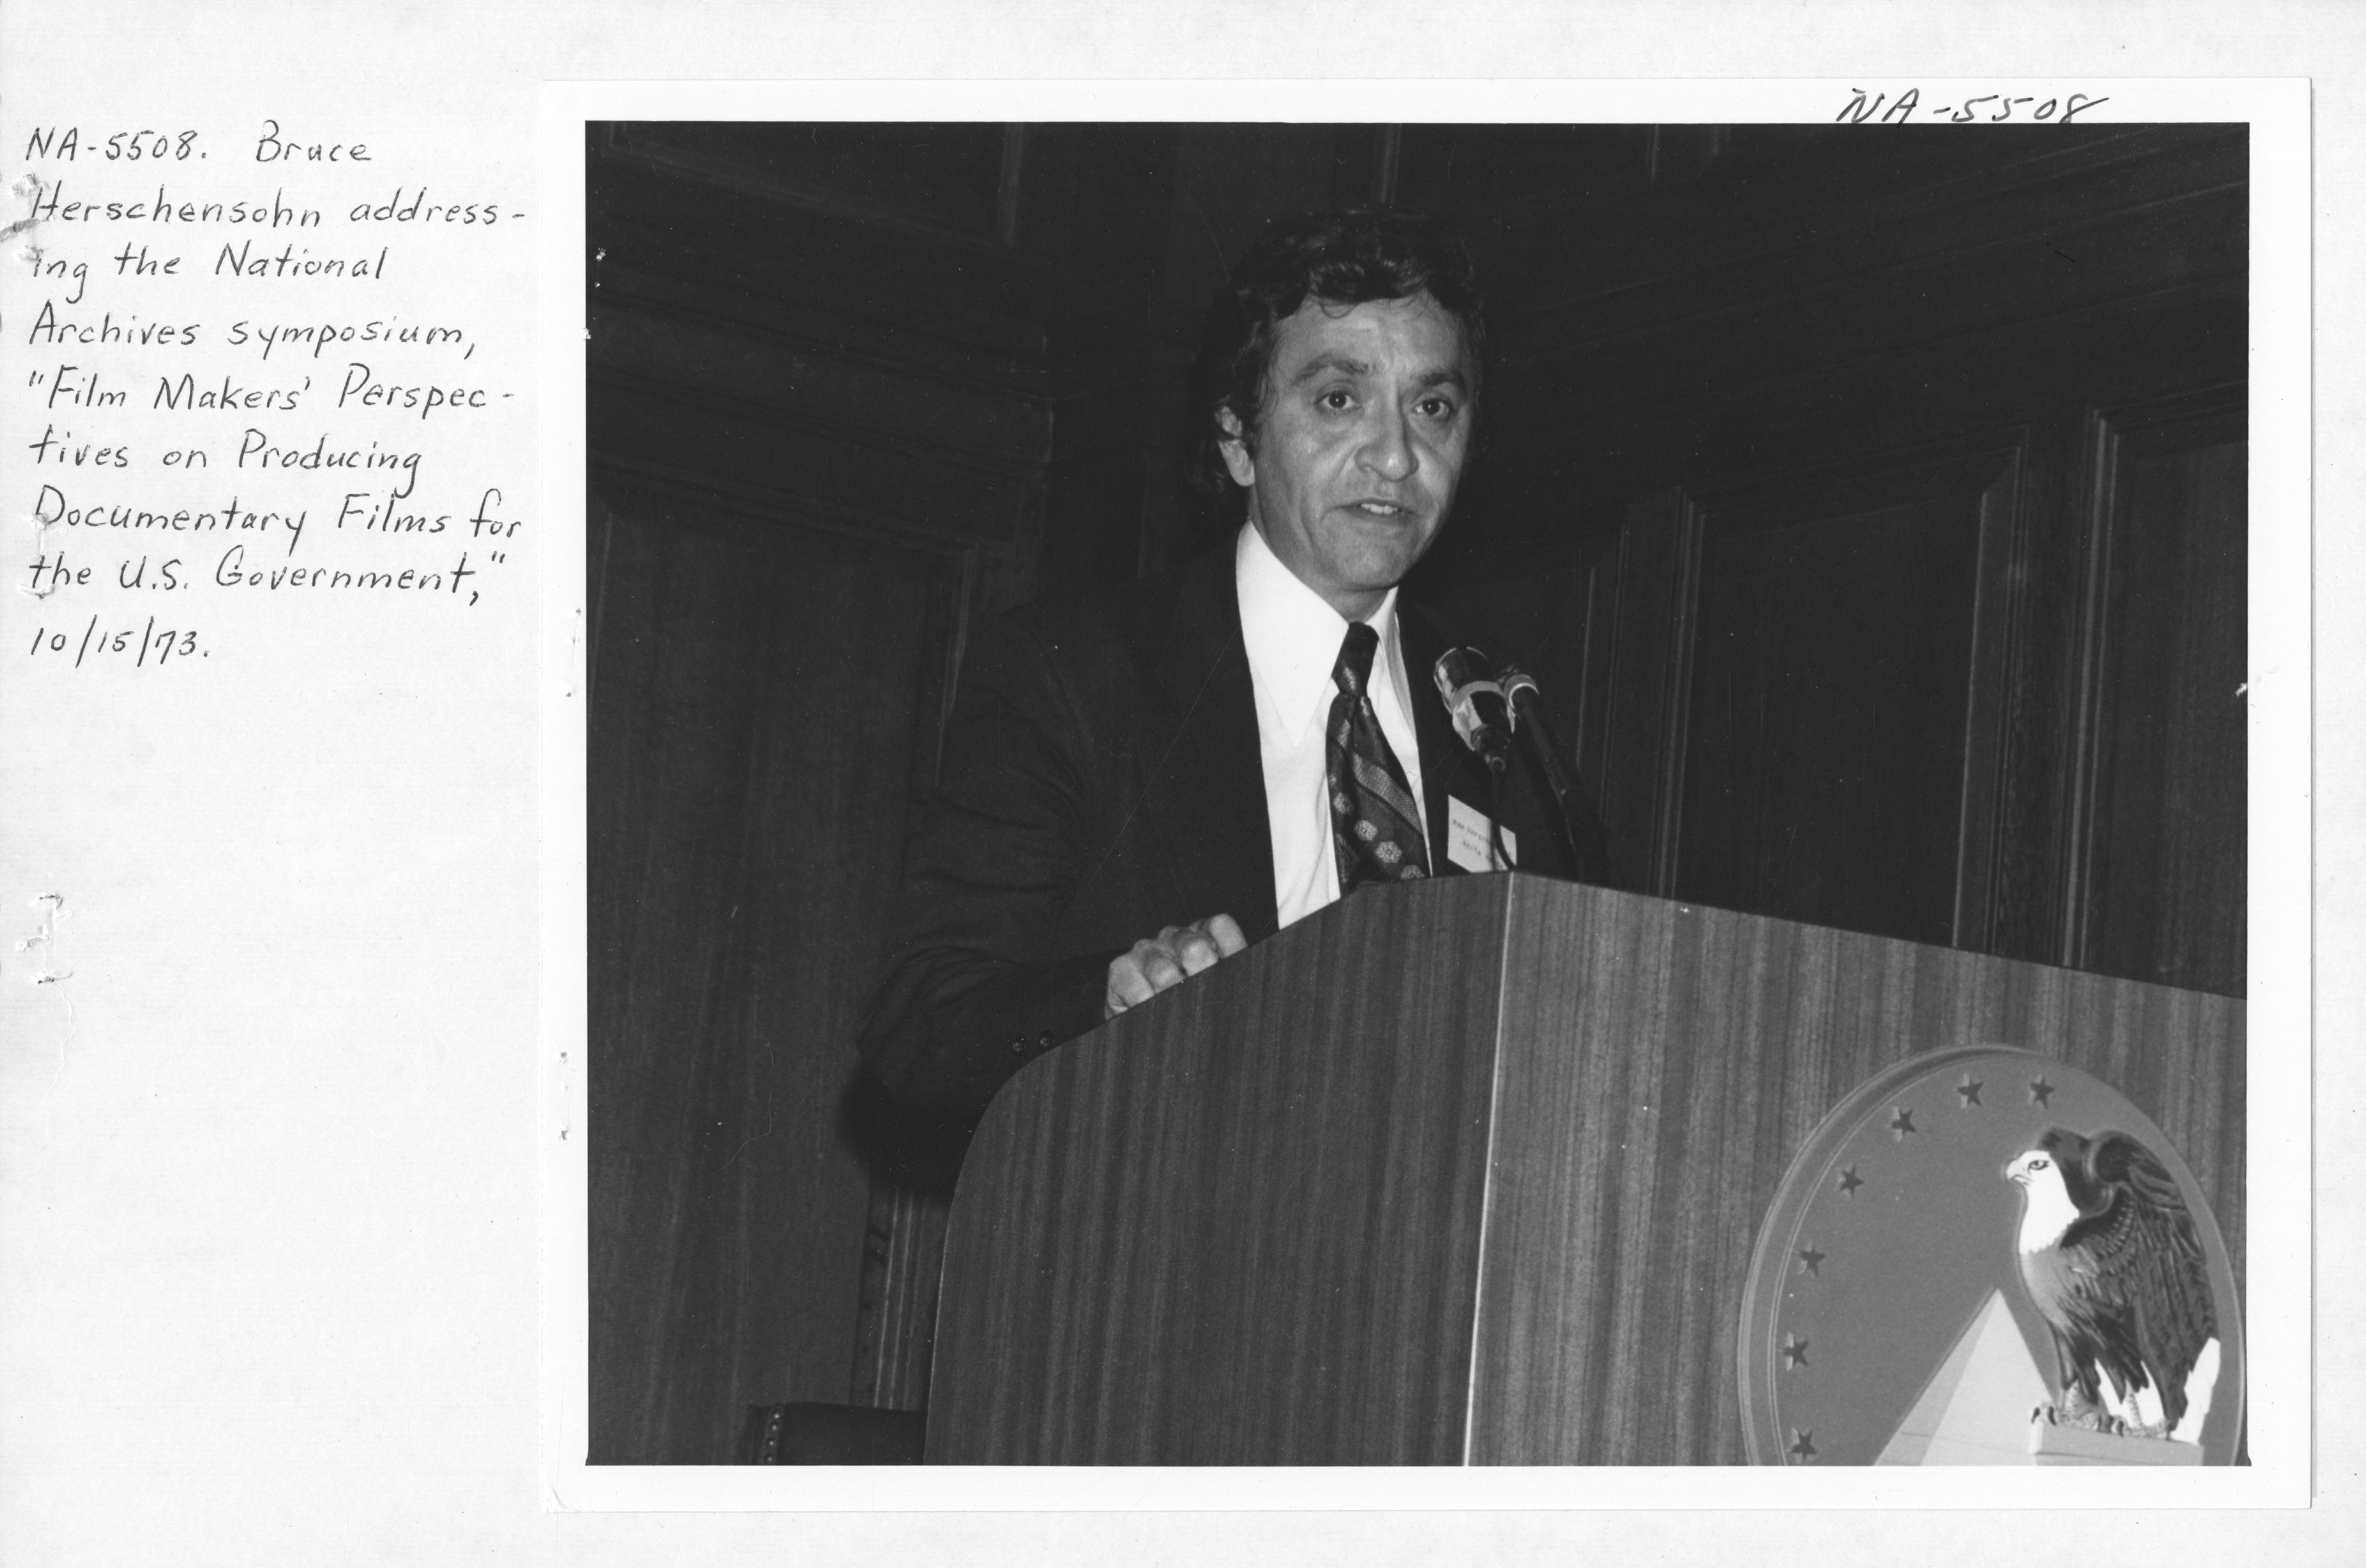 Photograph of Bruce Herschensohn Addressing the National Archives Symposium on